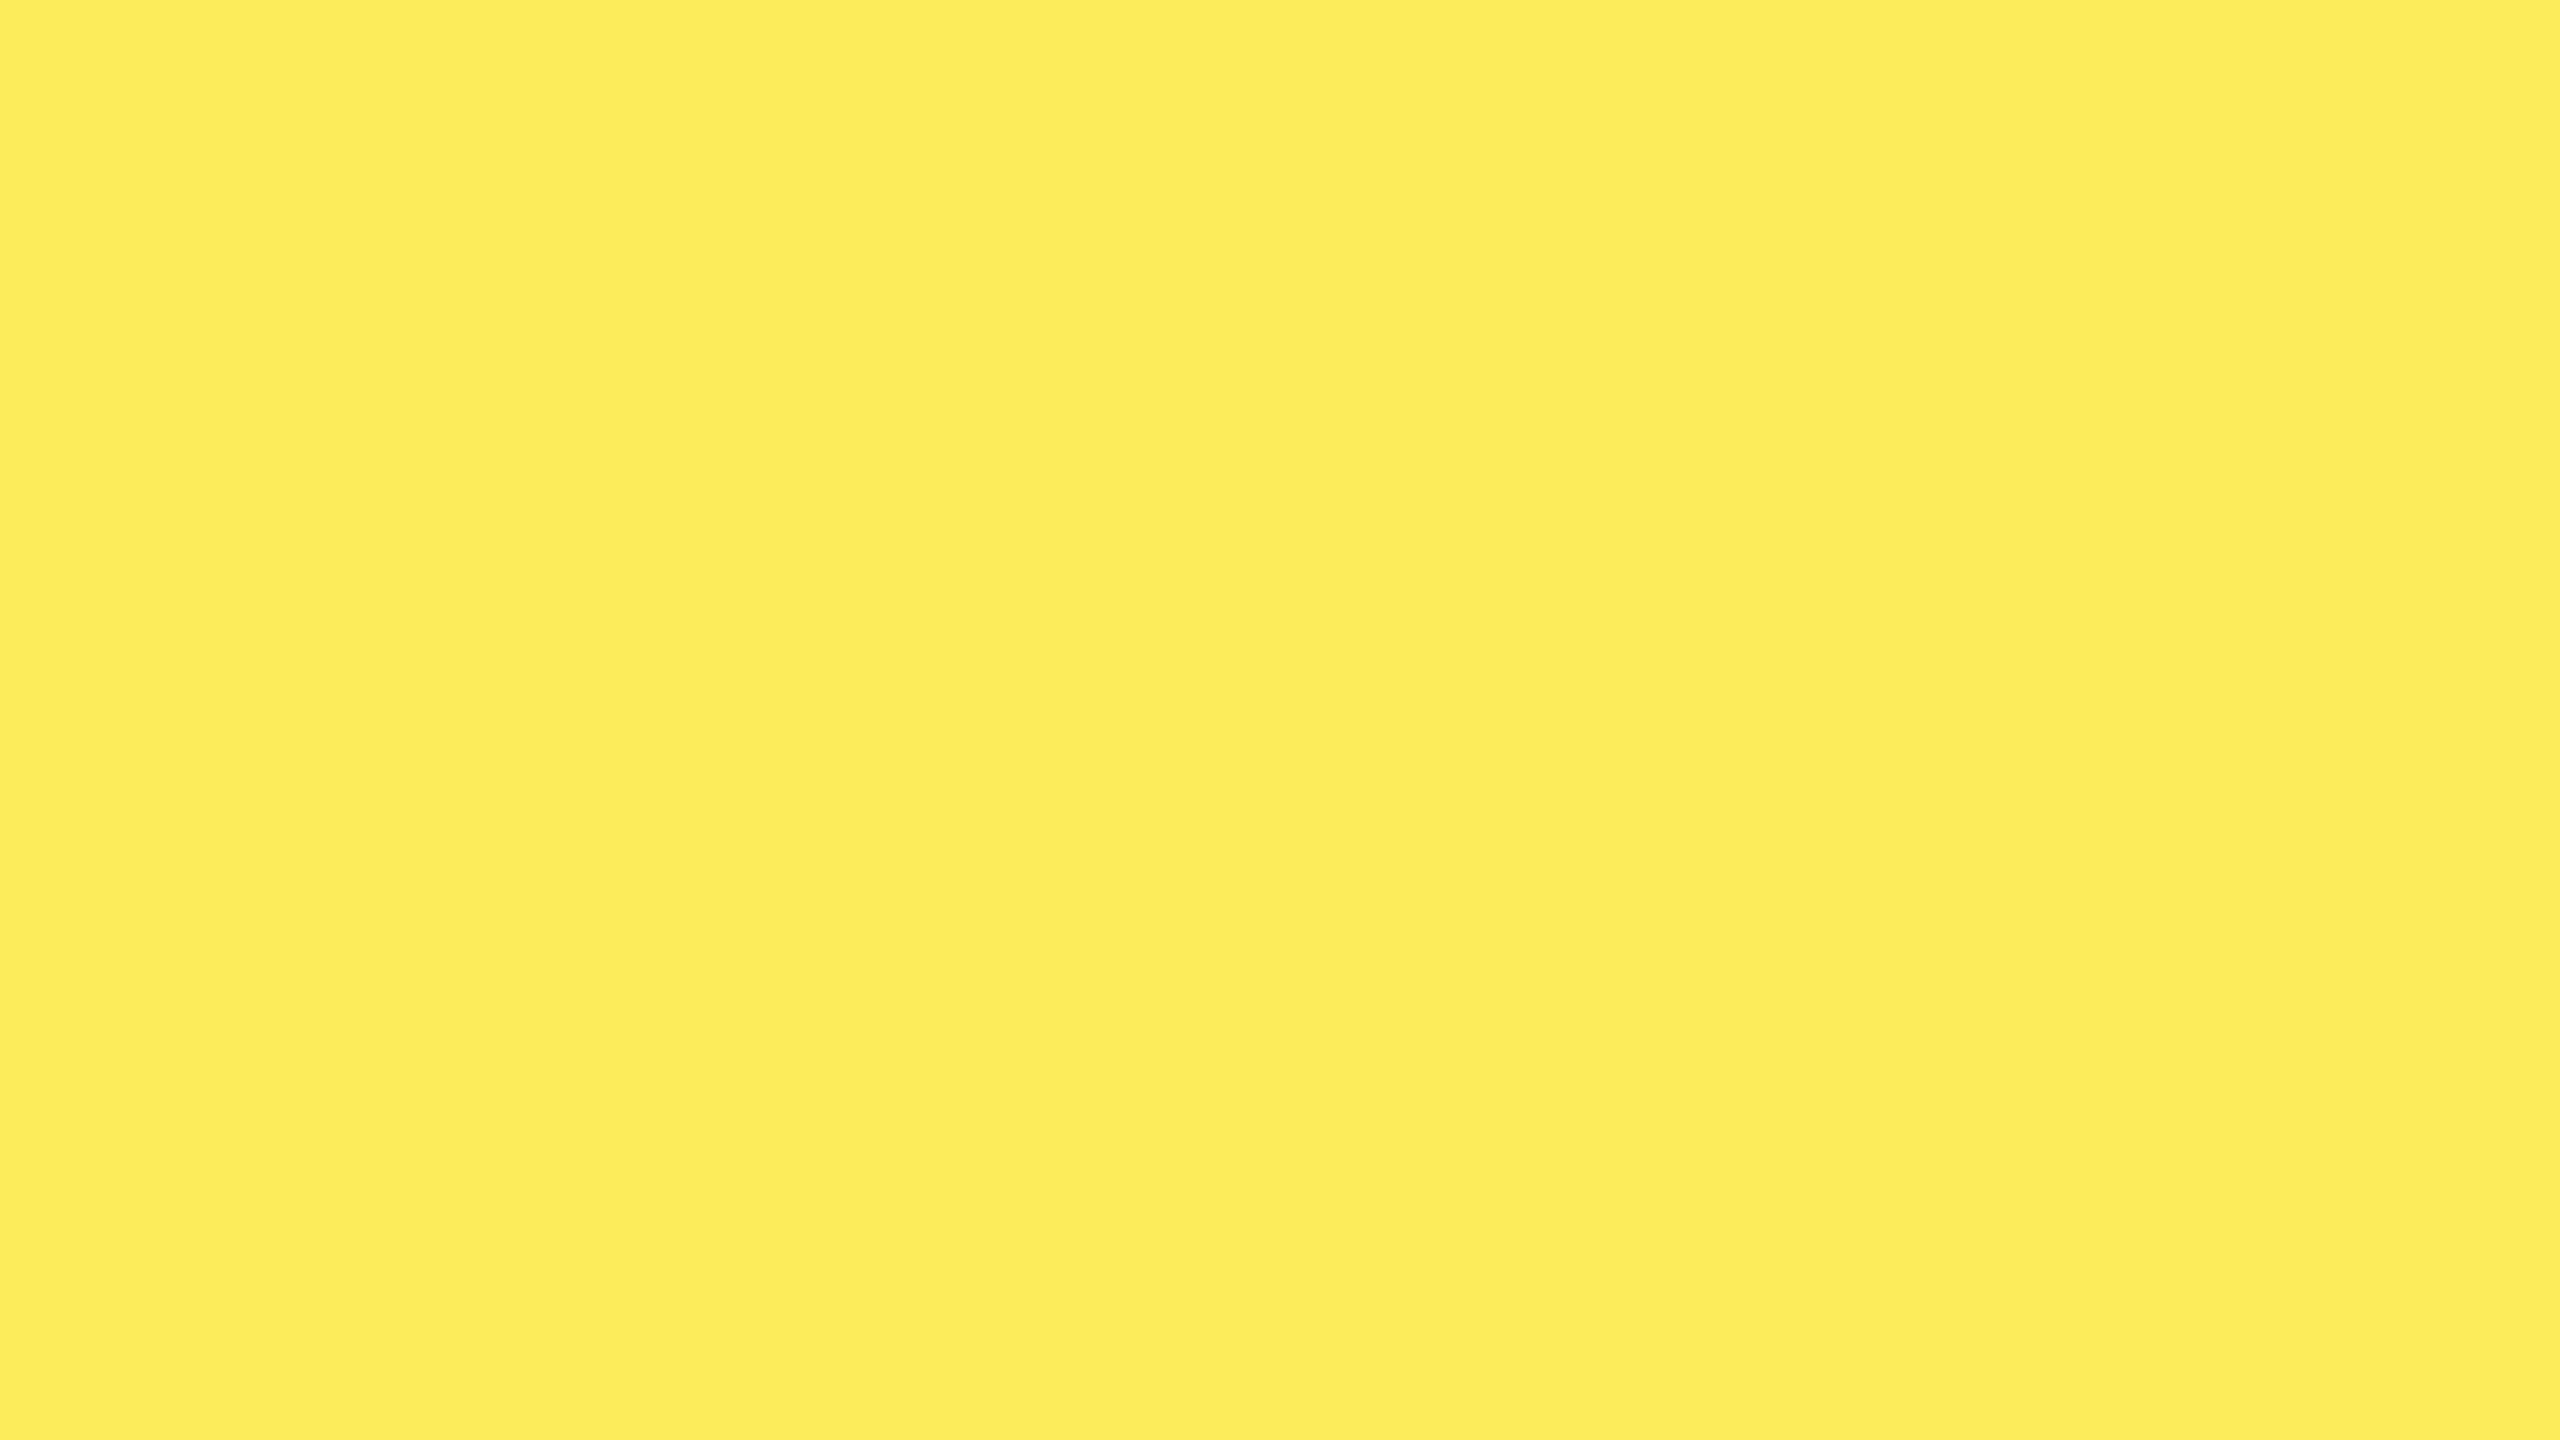 2560x1440 Maize Solid Color Background